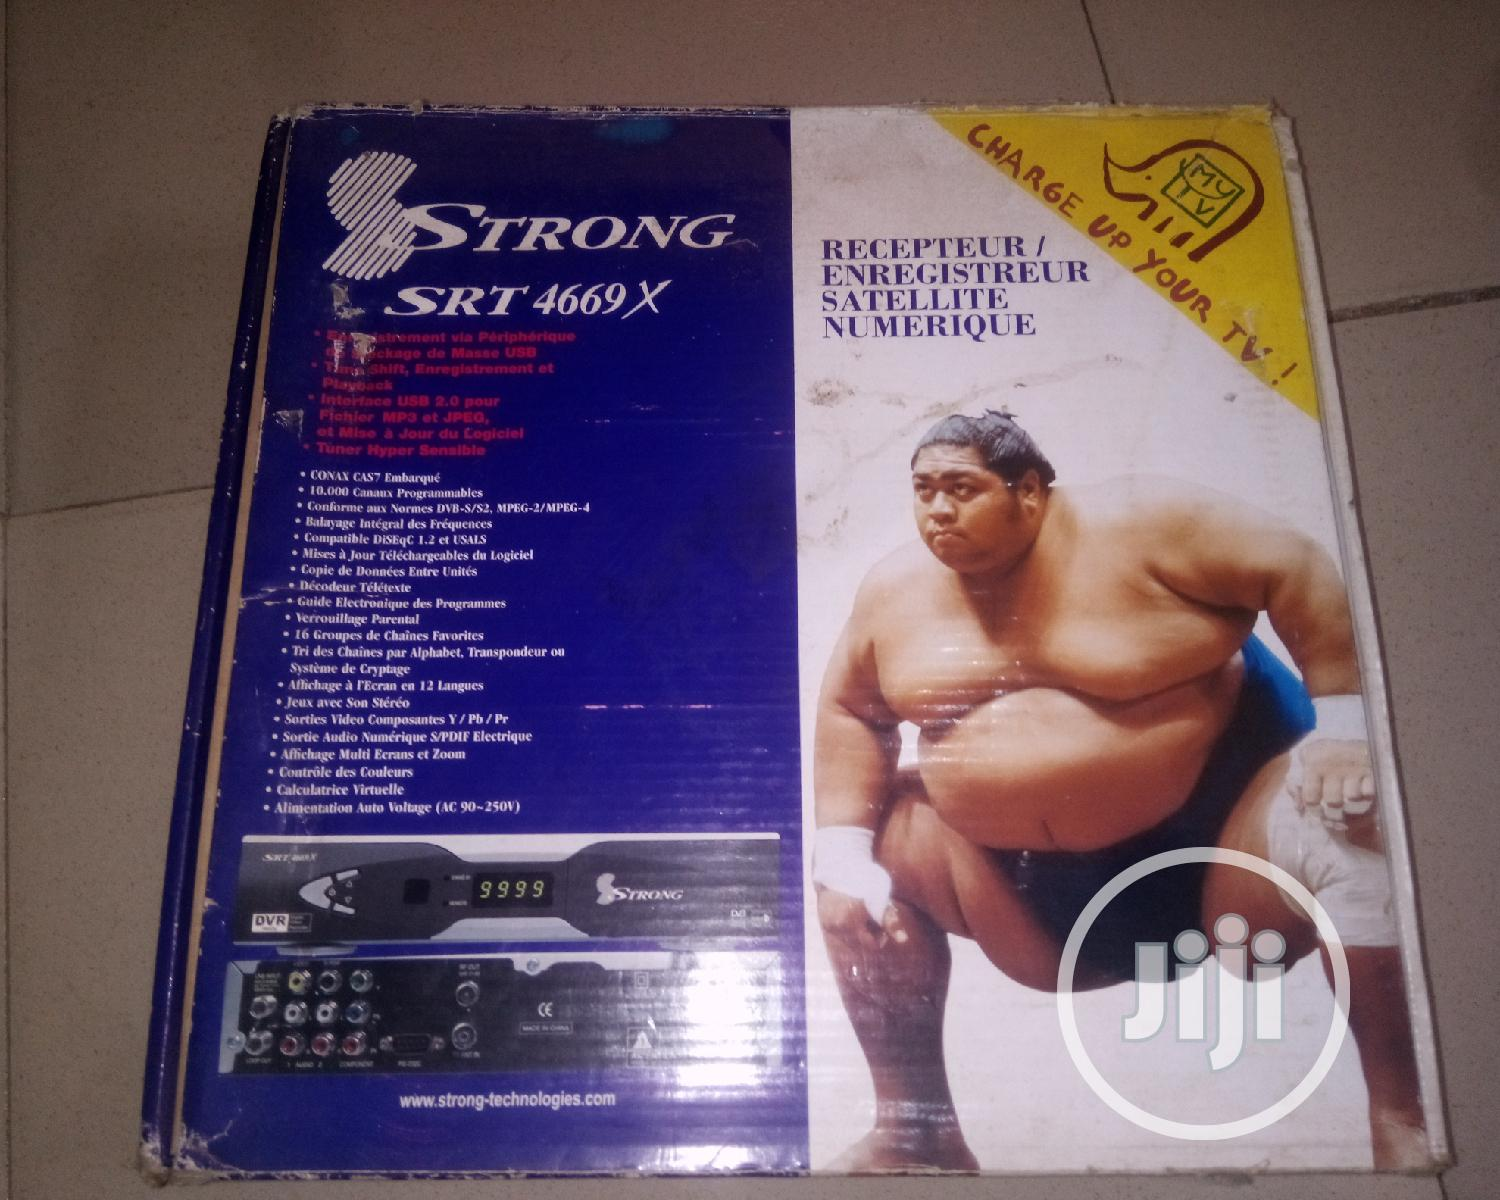 Strong Srt4669x Decoder | TV & DVD Equipment for sale in Oluyole, Oyo State, Nigeria